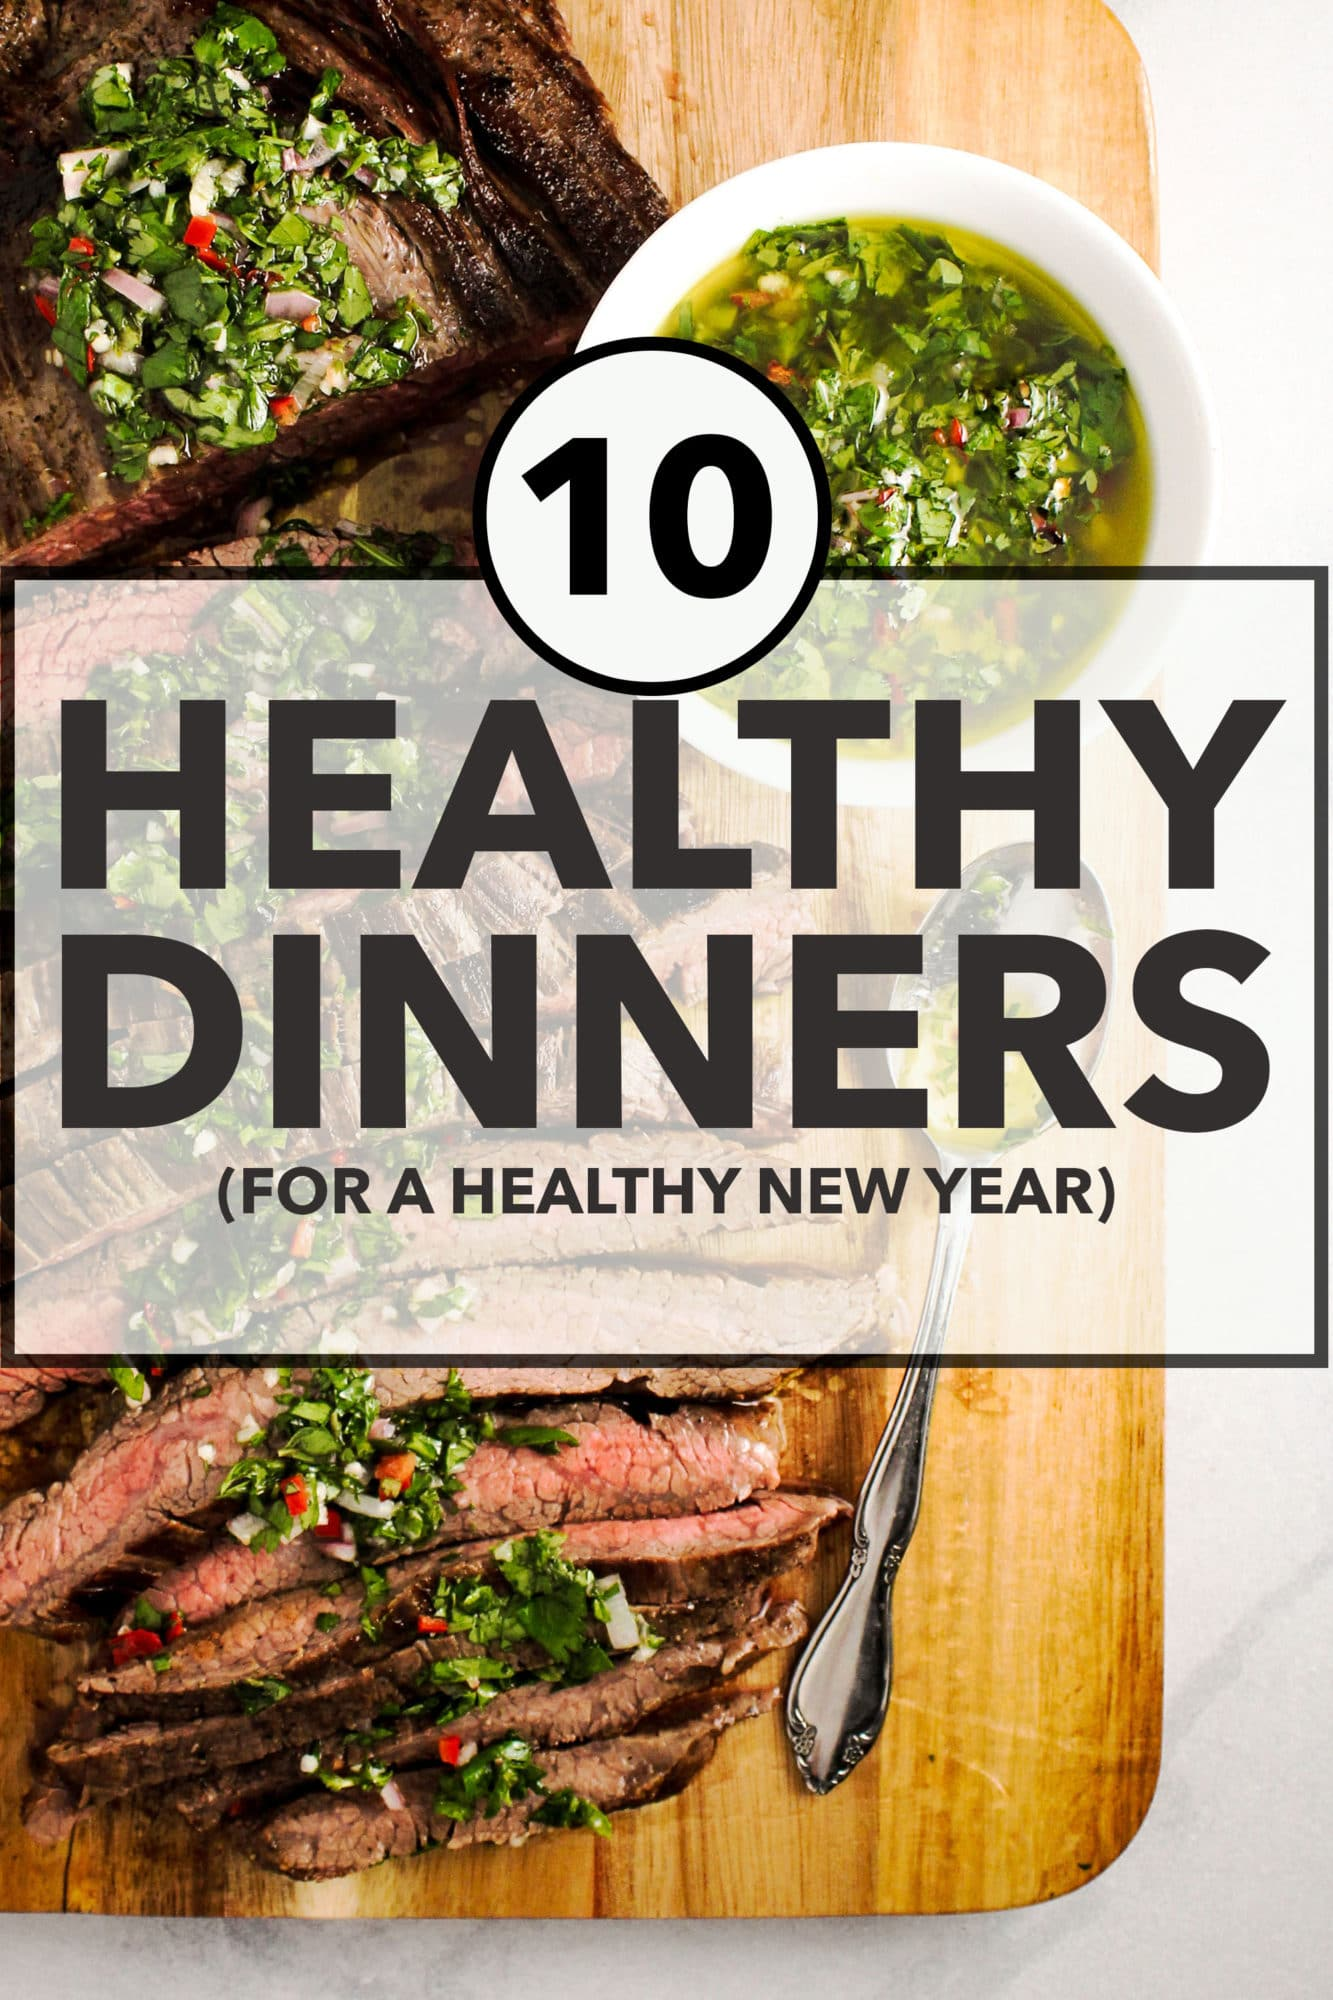 10 Healthy Dinners for a Healthy New Year